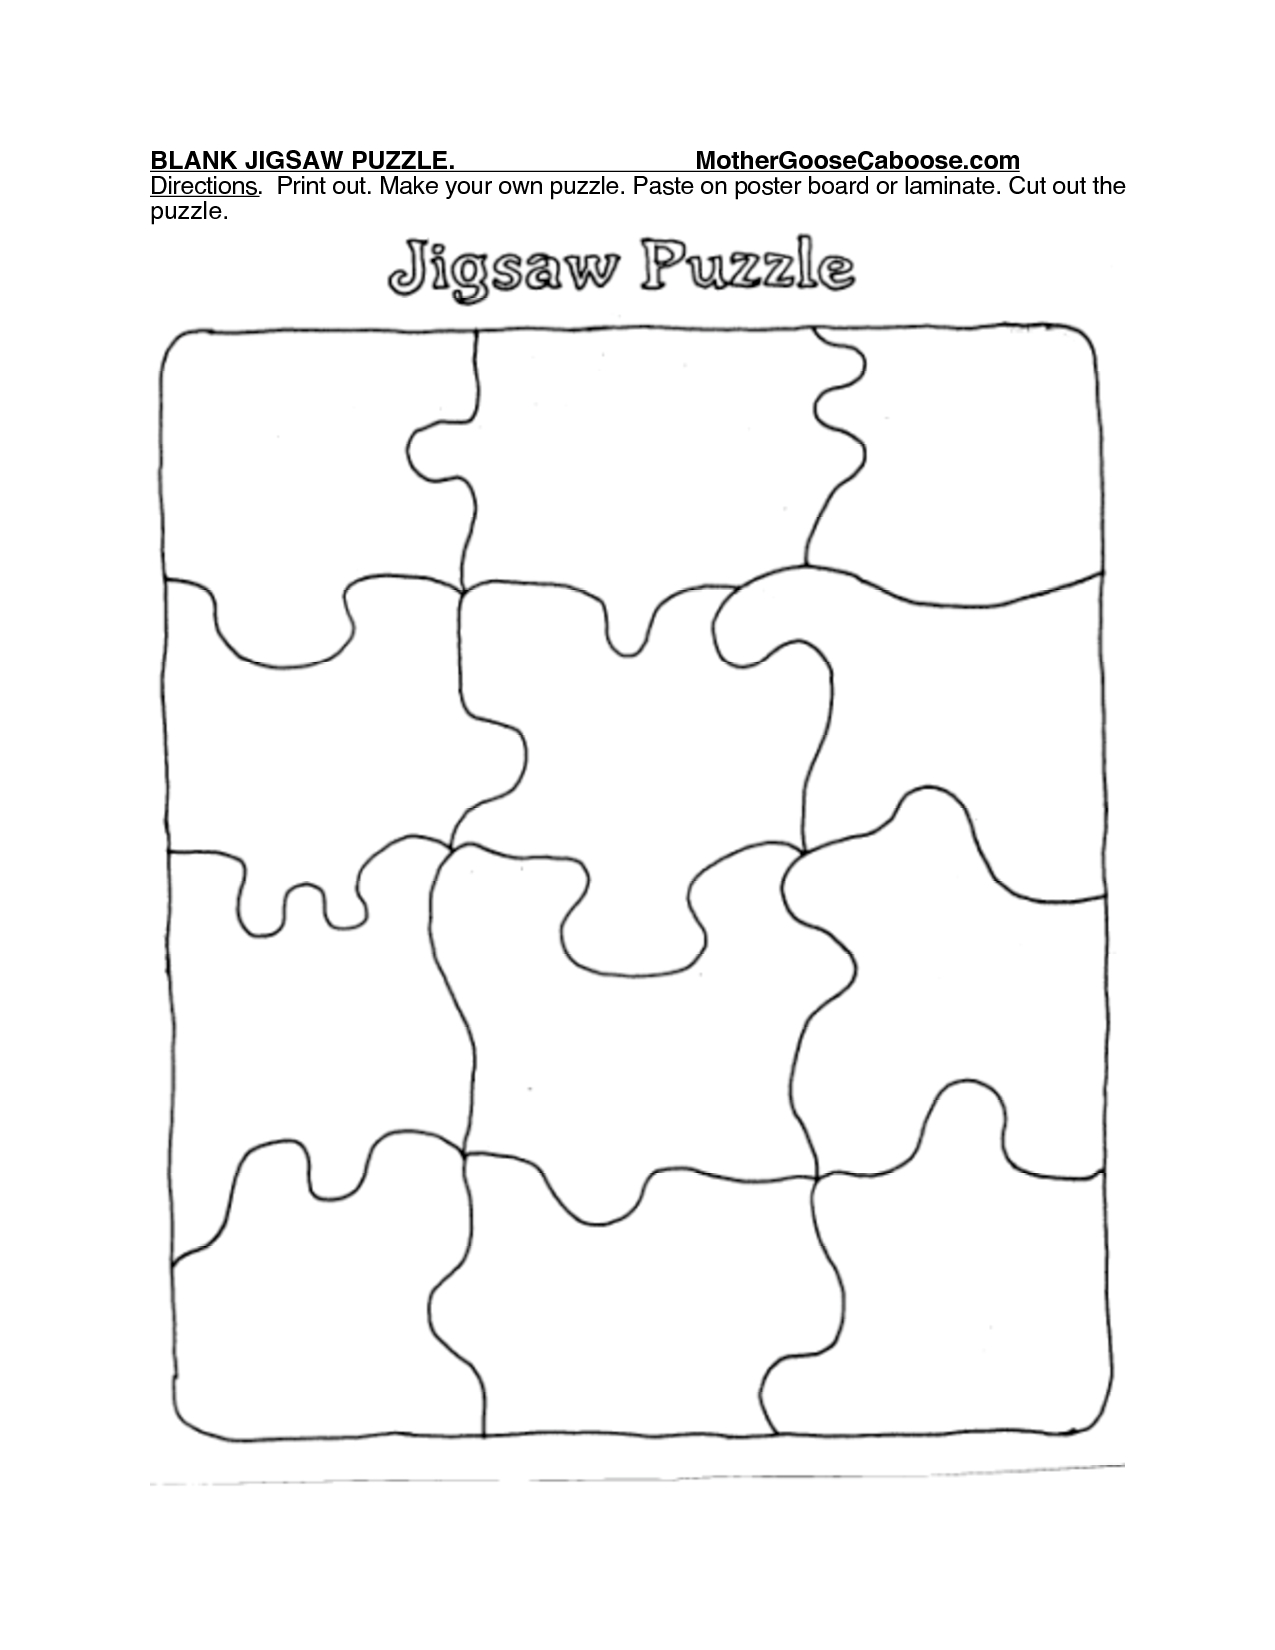 Printable Puzzle Piece Template | Search Results | New Calendar - Printable Jigsaw Puzzle Template Generator